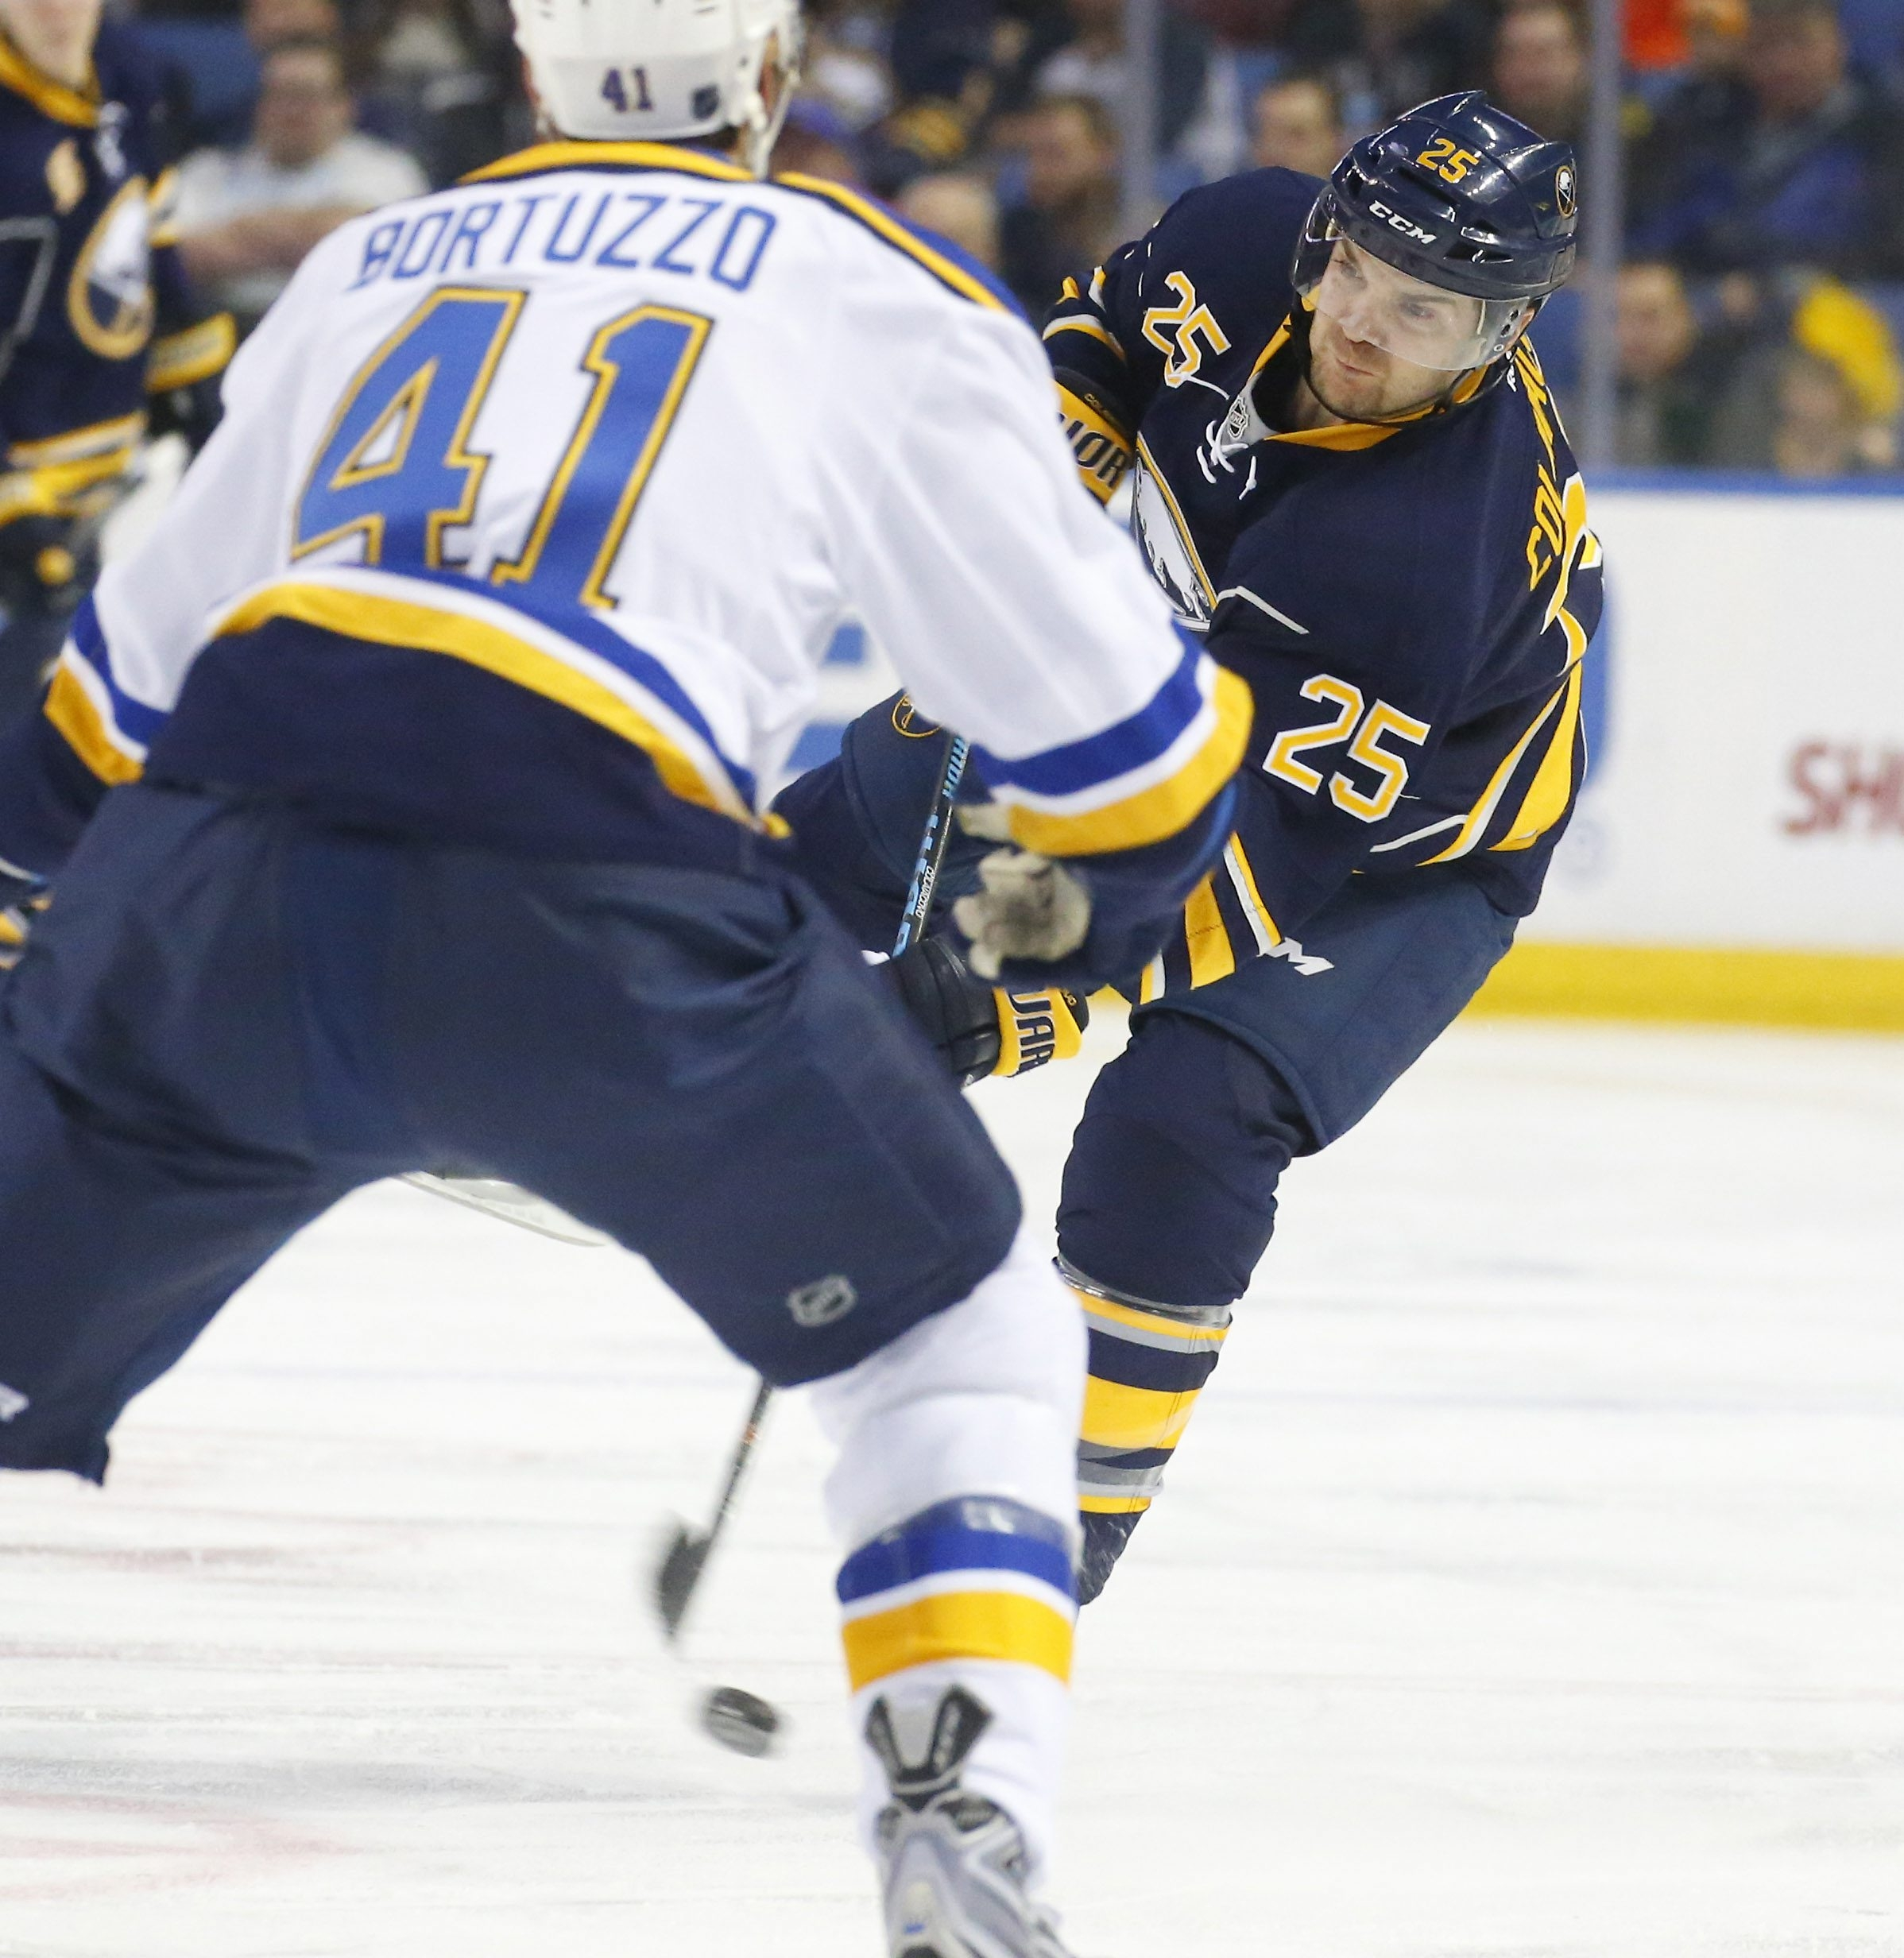 Sabres' Carlo Colaiacovo dumps the puck in the first period at the First Niagara Center.